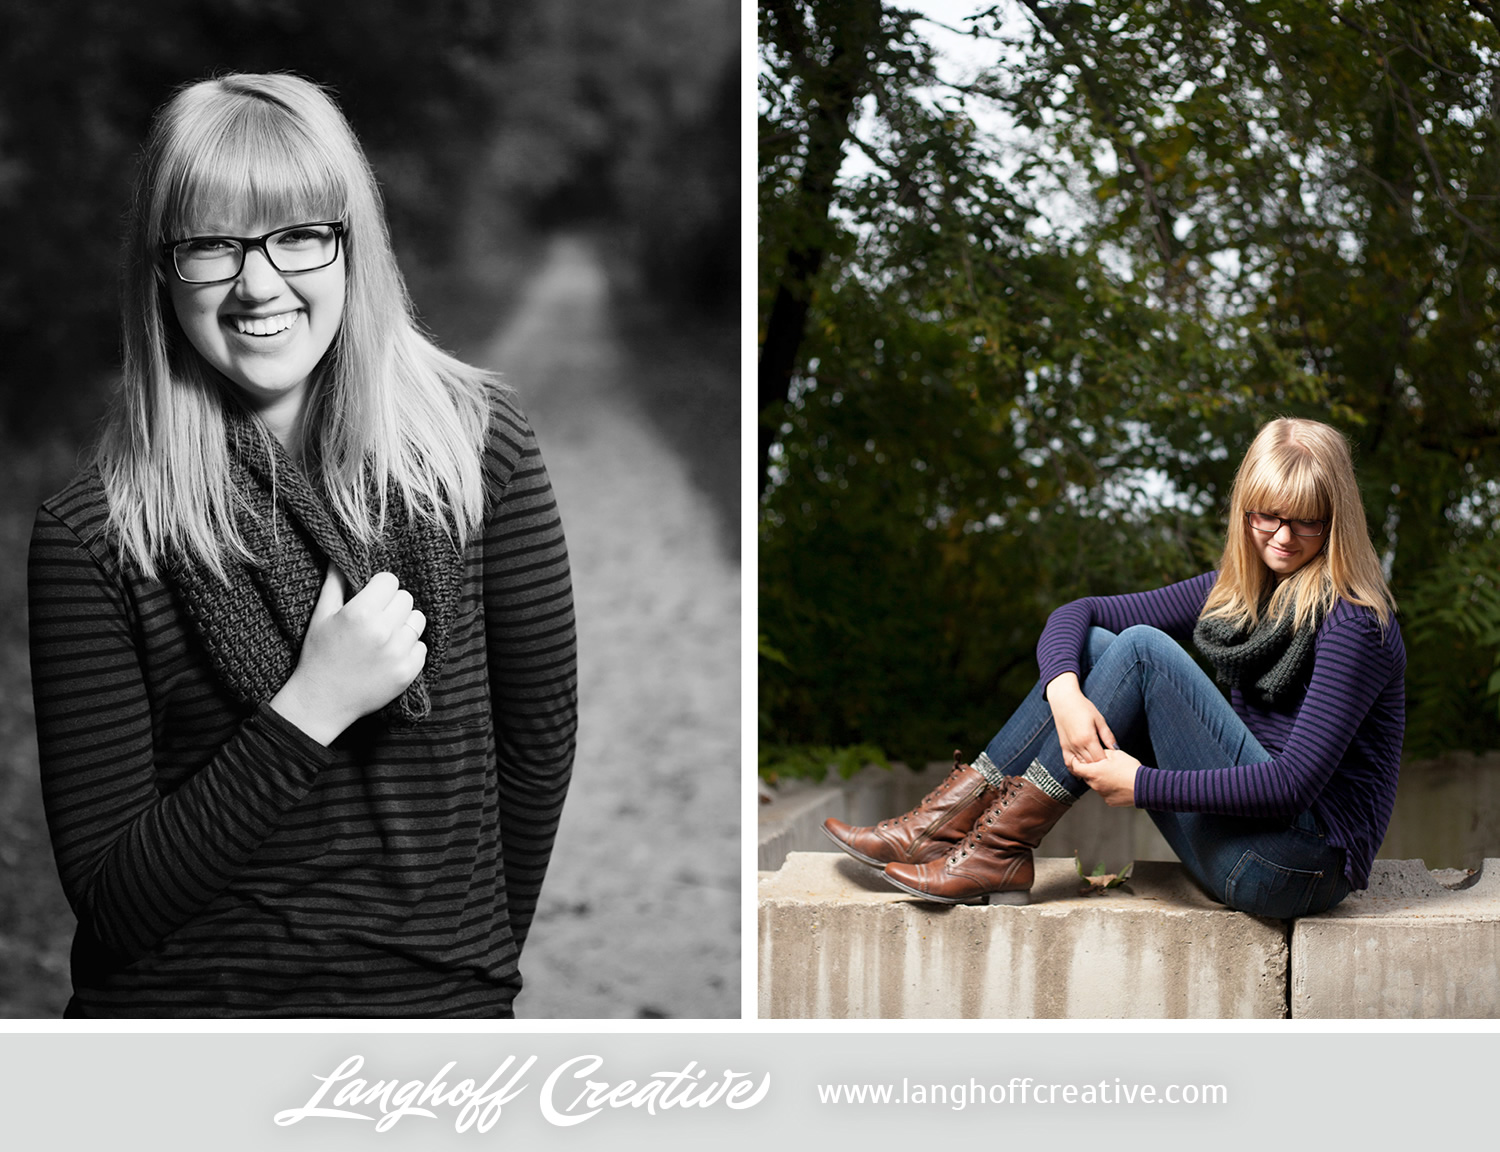 RacineSeniorPortraits-senior2014-LanghoffCreative-Abby-10-photo.jpg